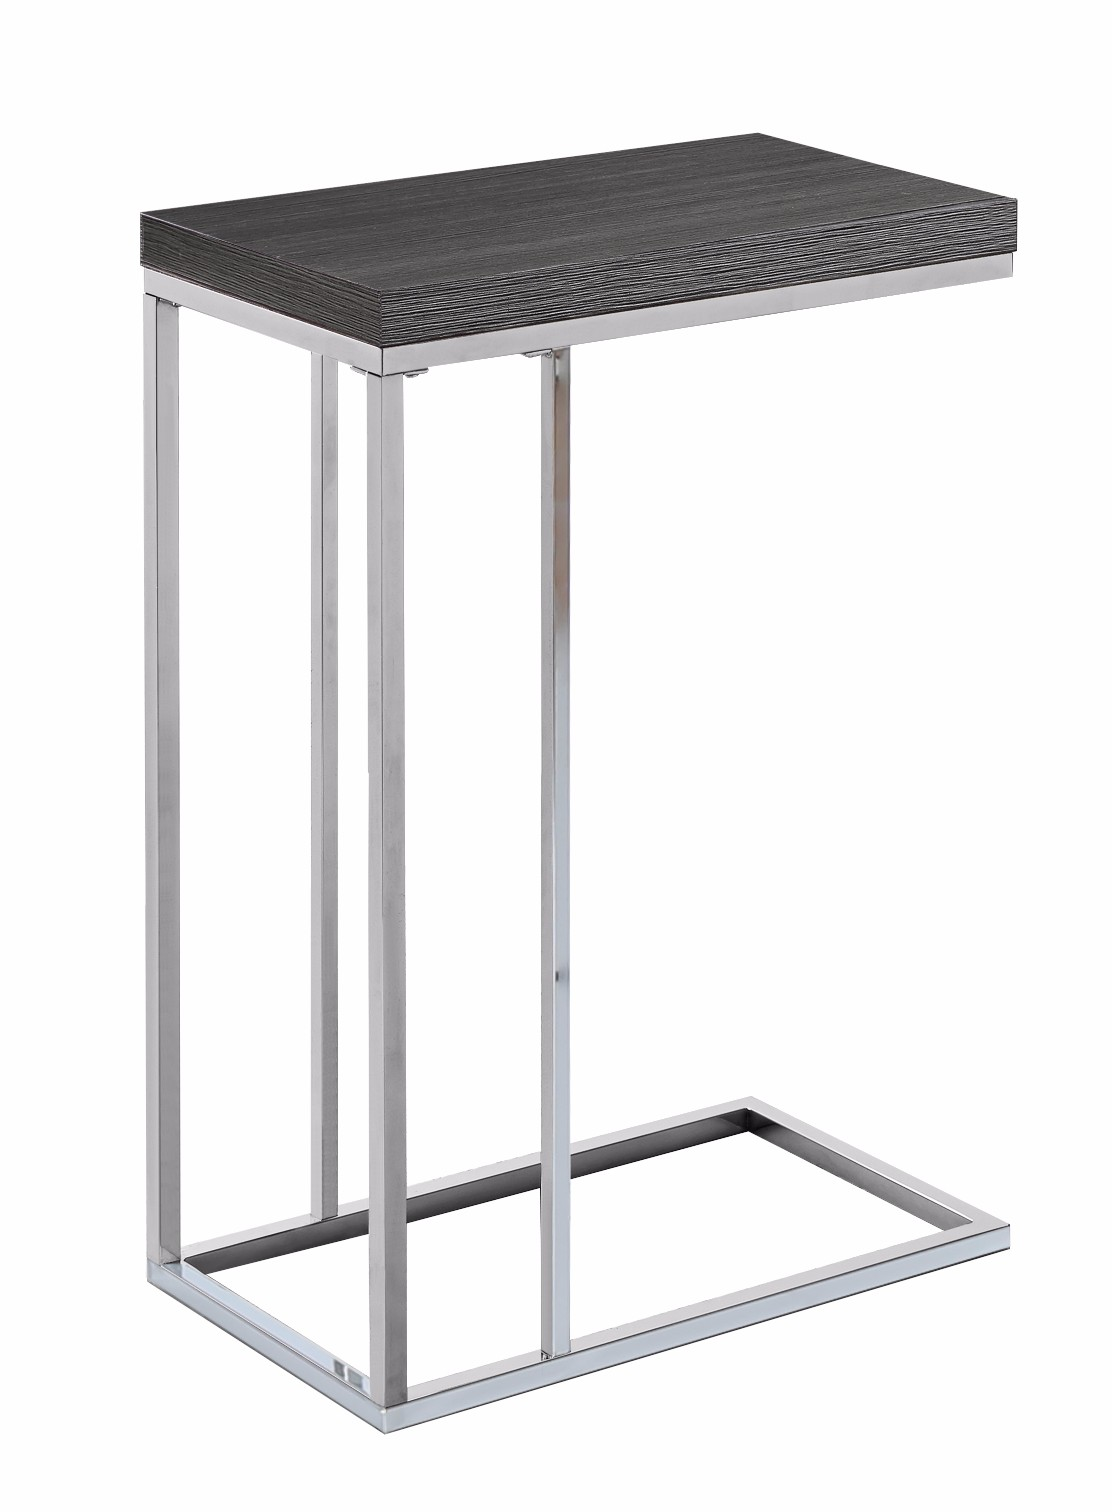 accent table grey chrome metal monarch specialty pier one shower curtains large marble top coffee small wooden with drawers storage chest seat ikea normande lighting led desk lamp